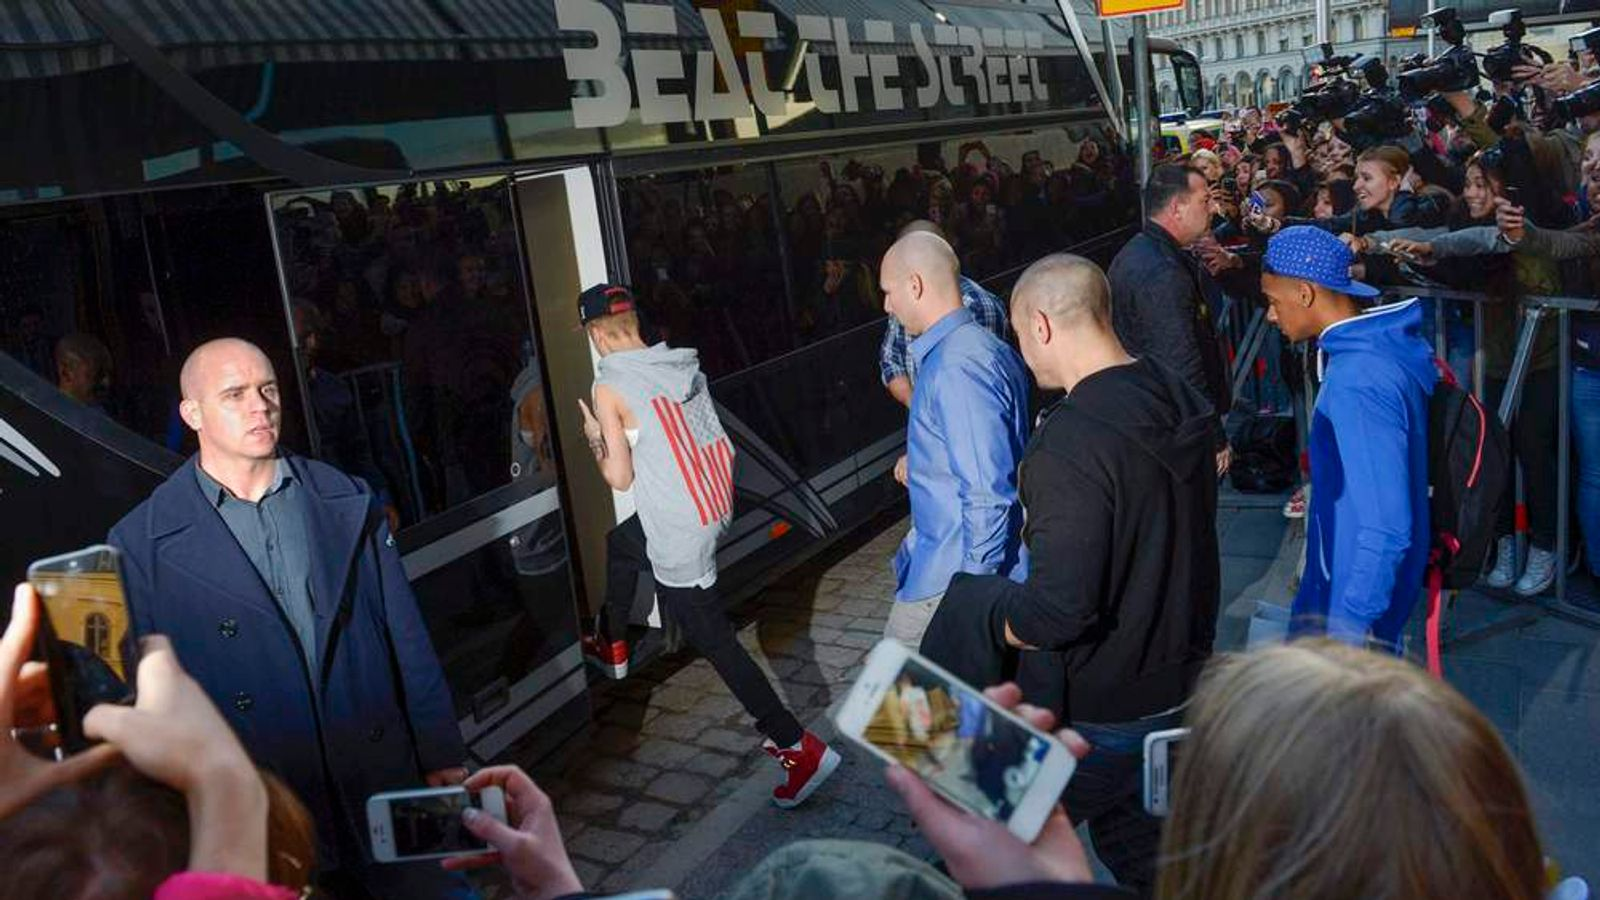 A file picture shows pop singer Bieber as he boards his tour bus outside Grand Hotel for his concert in Stockholm